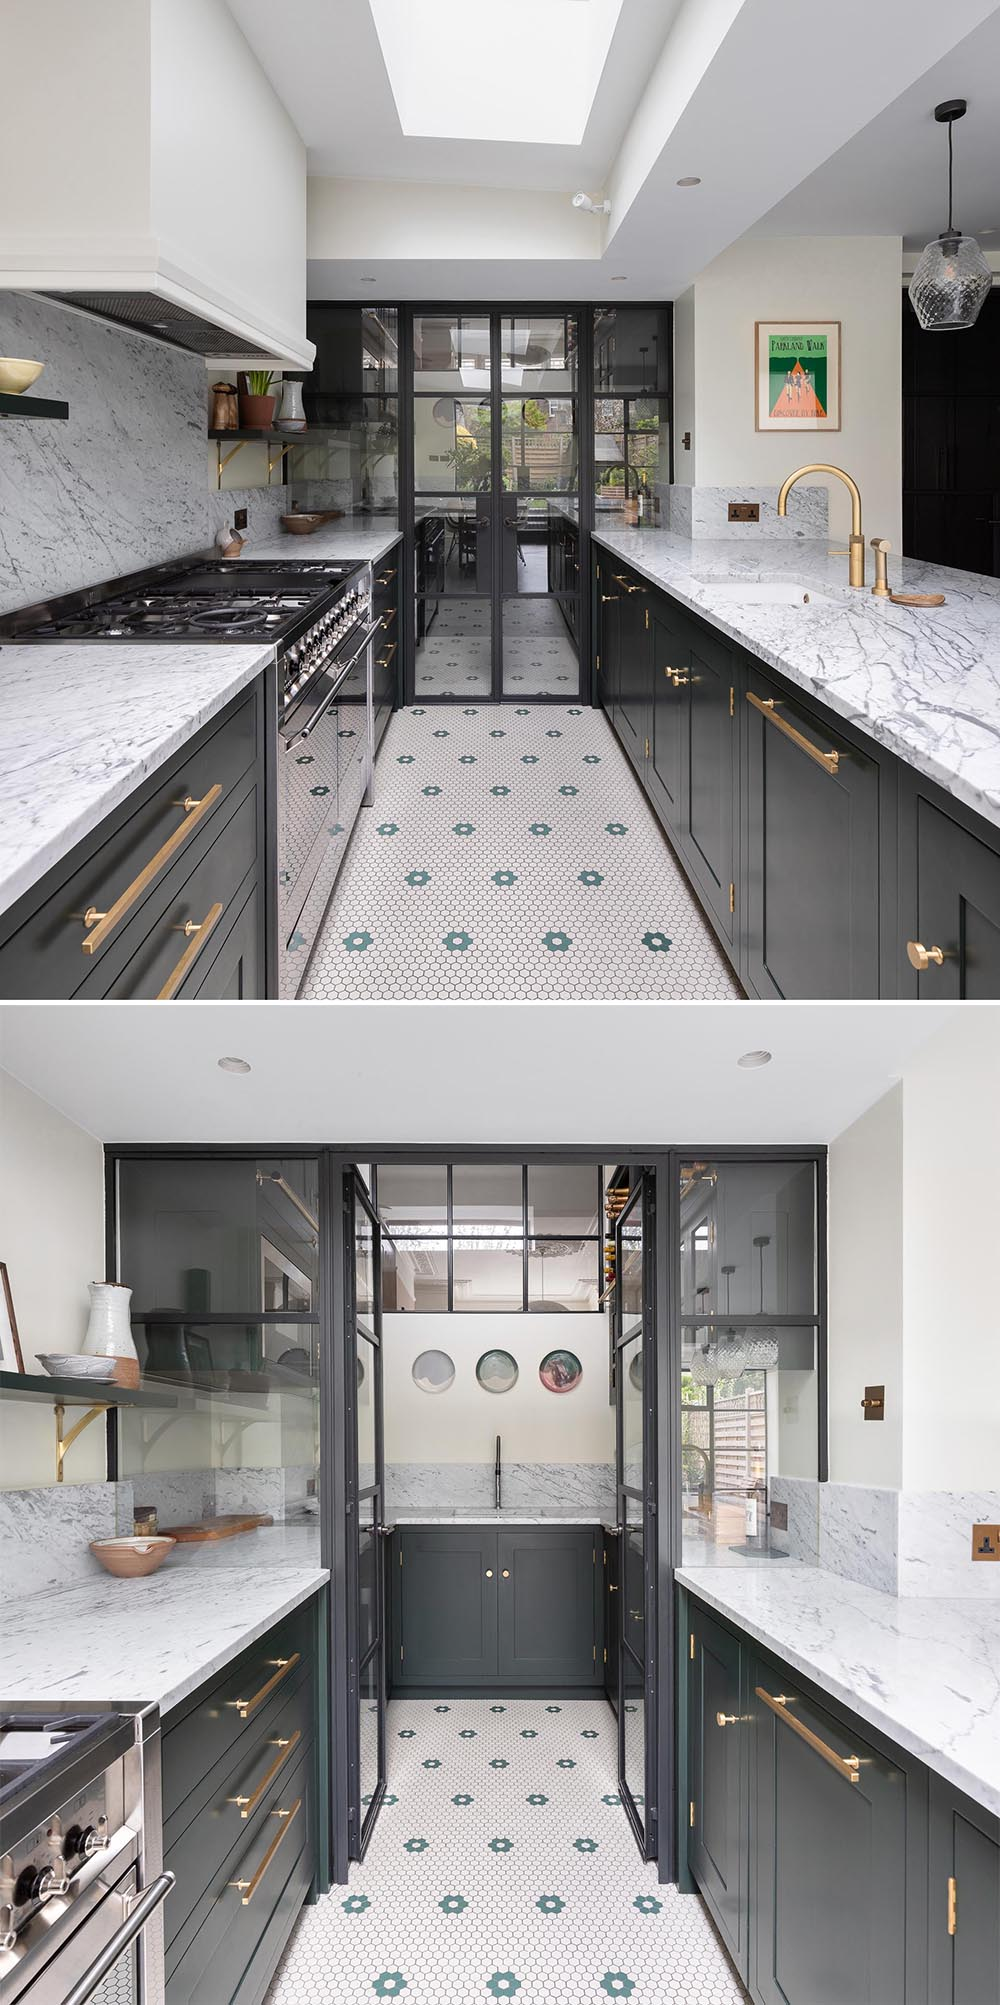 A modern kitchen with dark cabinets and gray marble countertops that continue through to a walk-in pantry behind a glass wall.